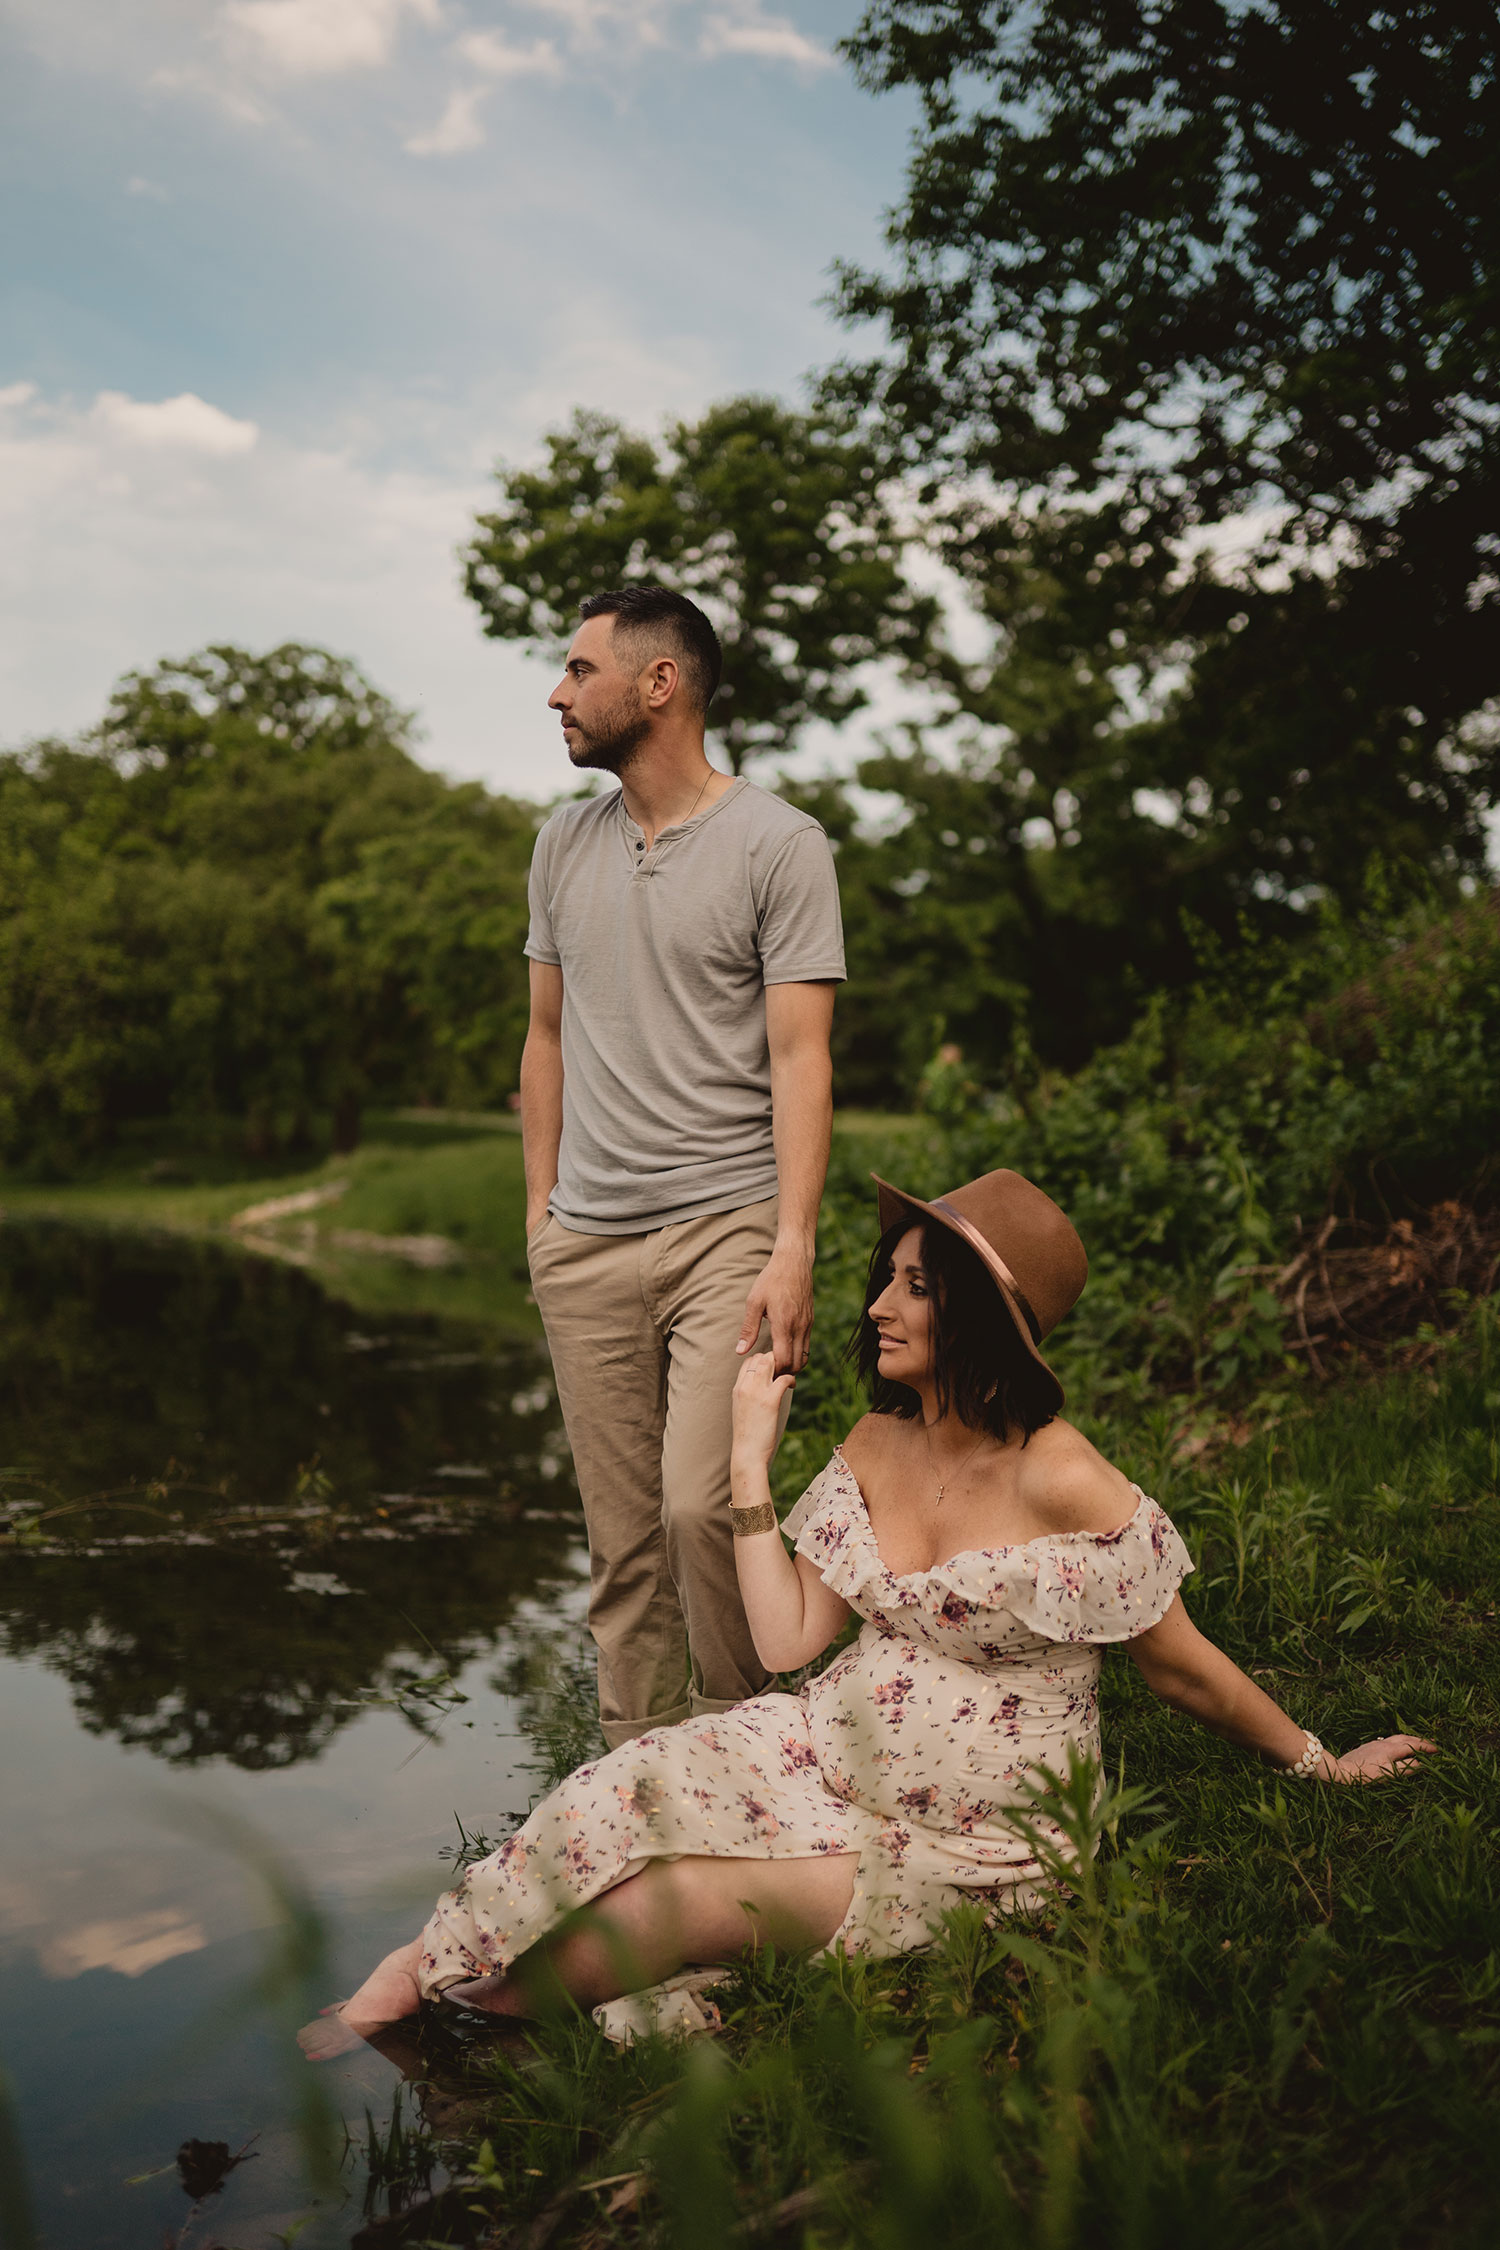 pregnant-woman-sitting-by-water-hilding-husbands-hand-maternity-desmoines-iowa-raelyn-ramey-photography.jpg